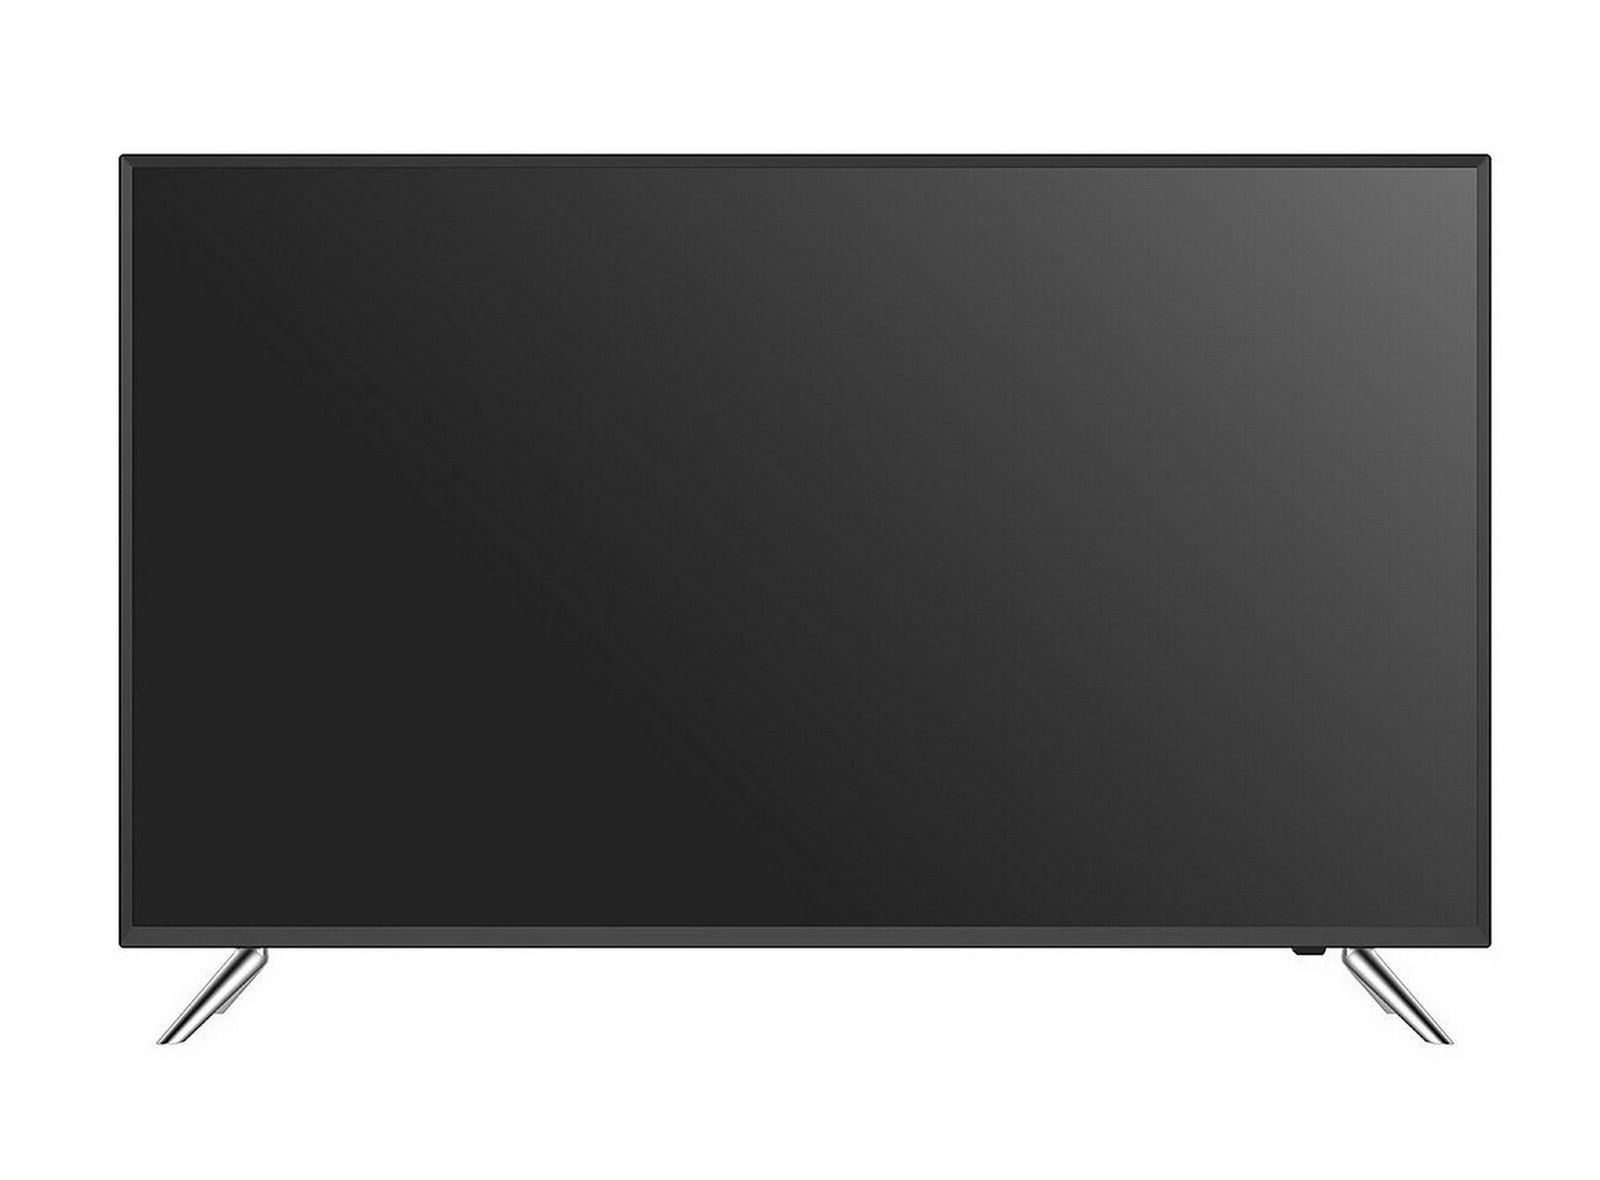 Hitachi HD 43C61 4K HDTV